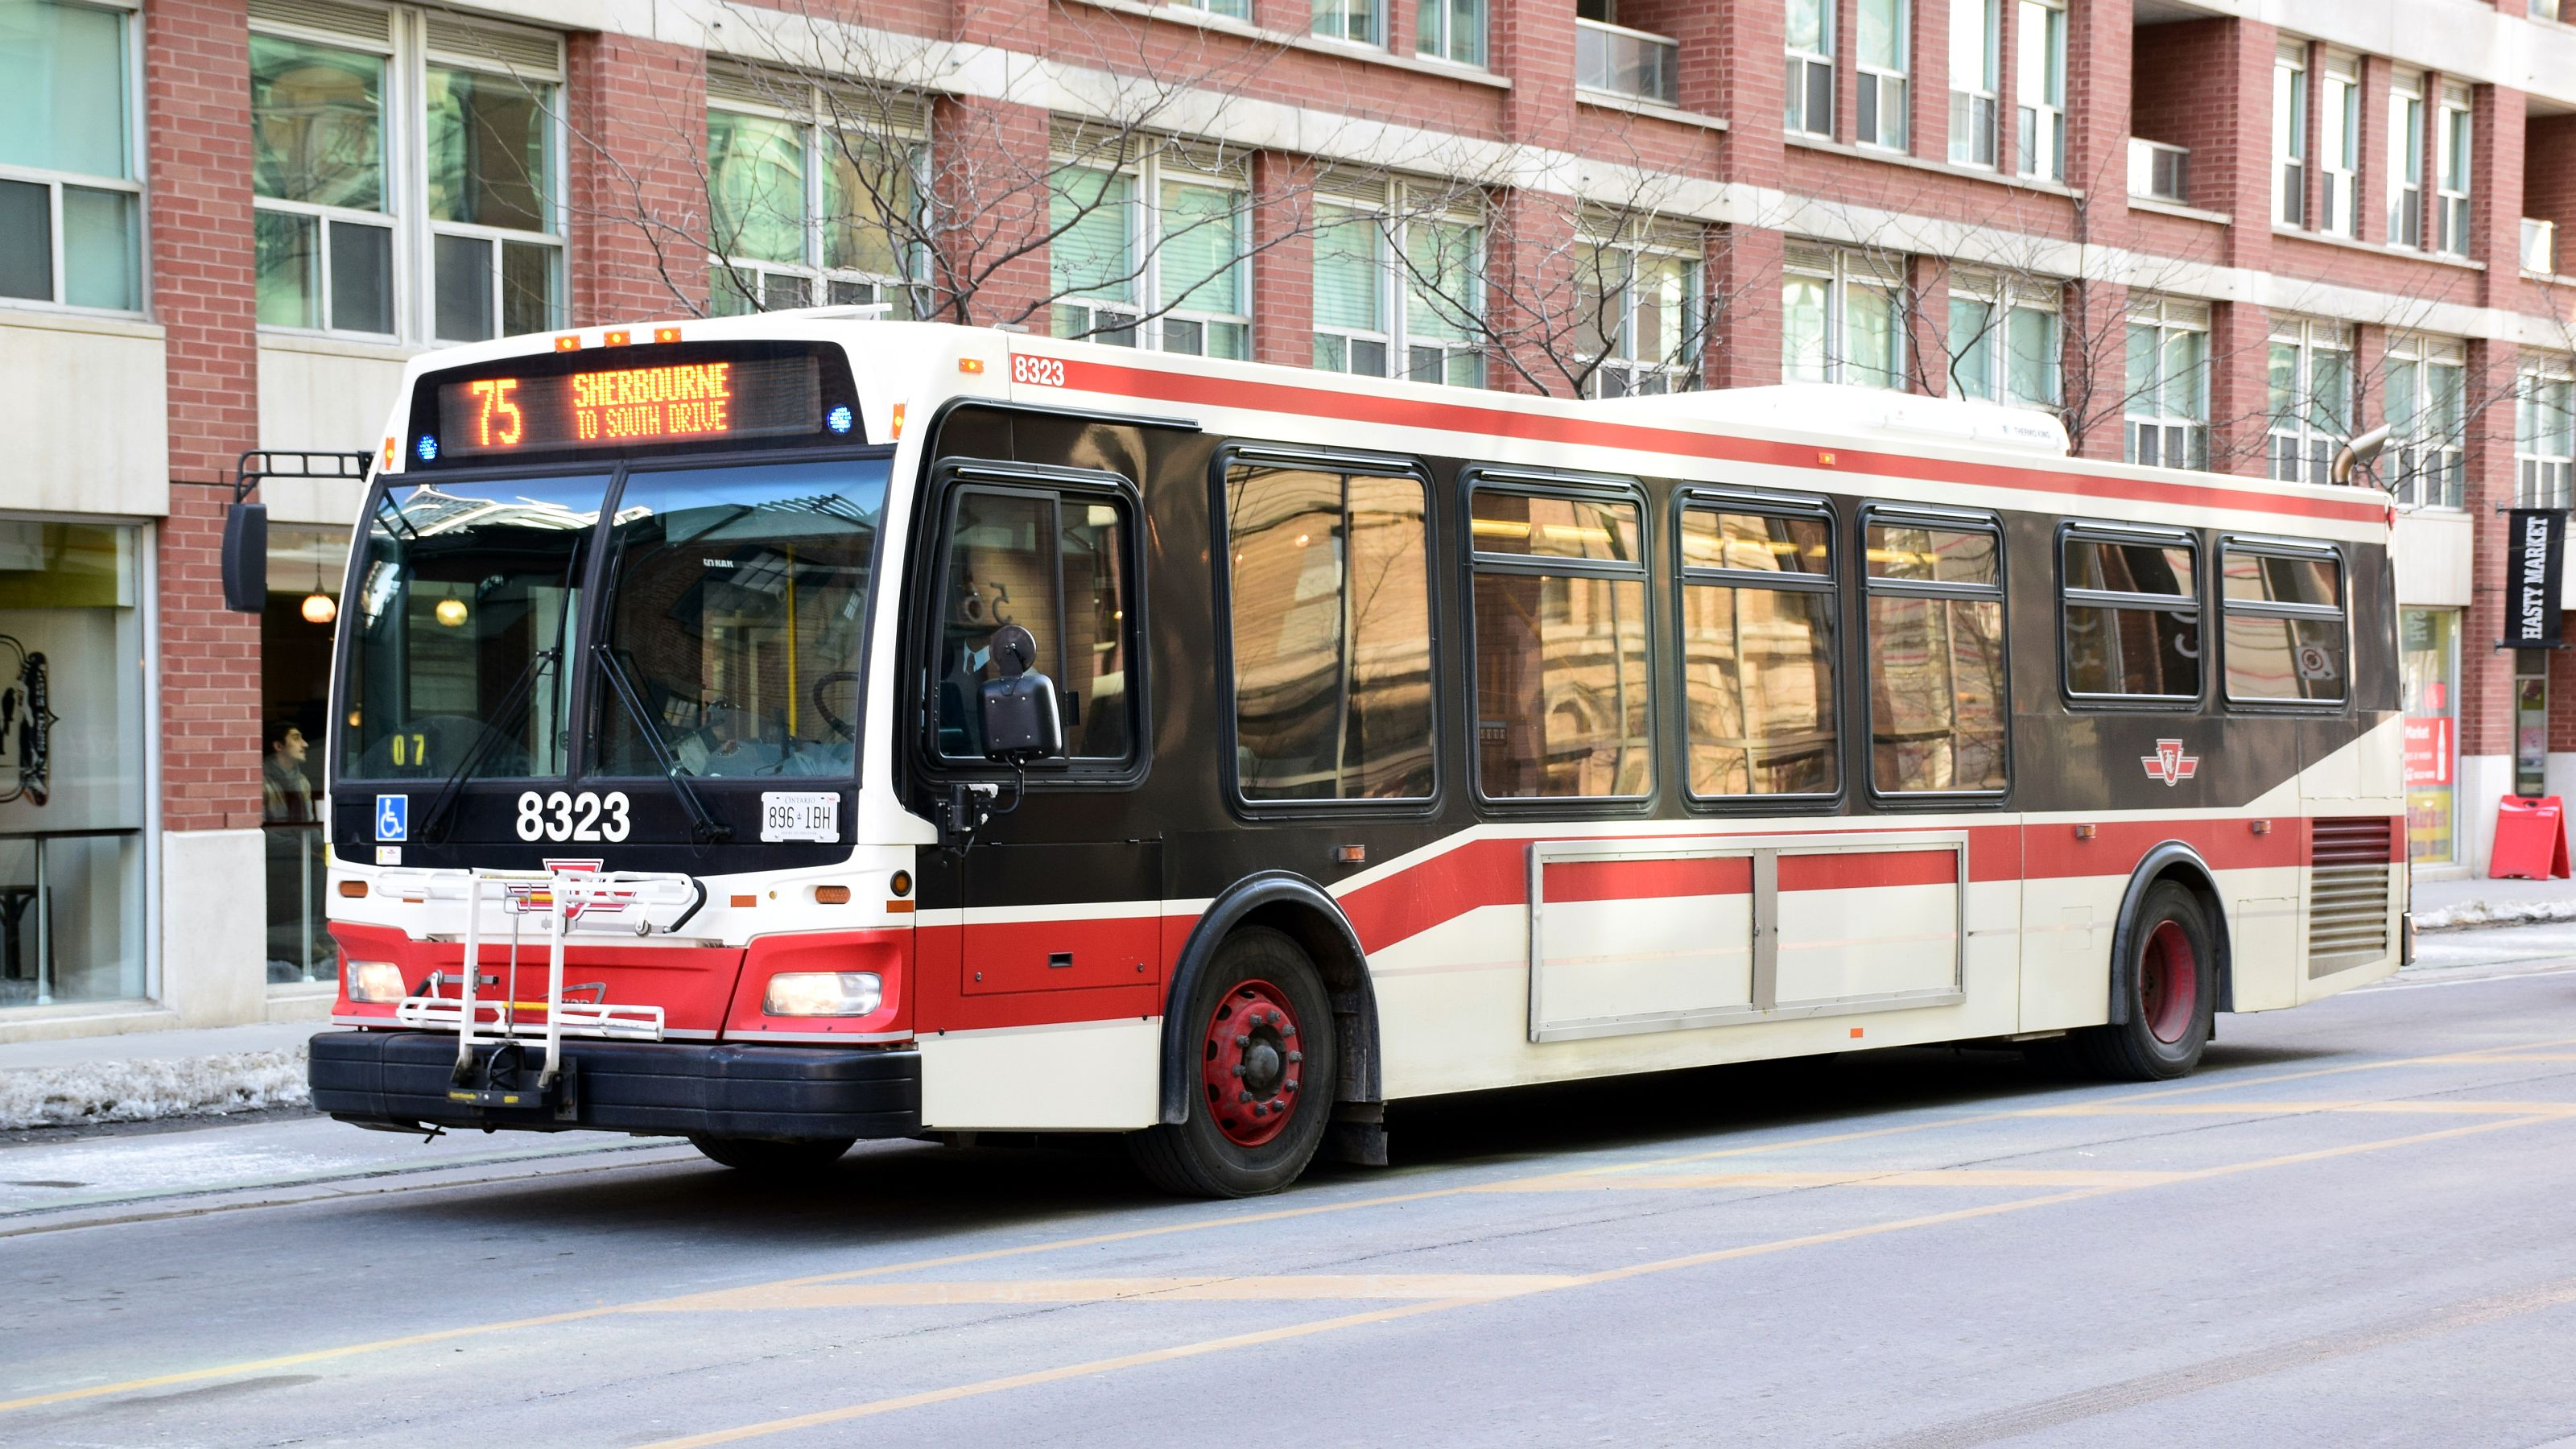 File:TTC 8323 on Route 75 Sherbourne.JPG - Wikimedia Commons